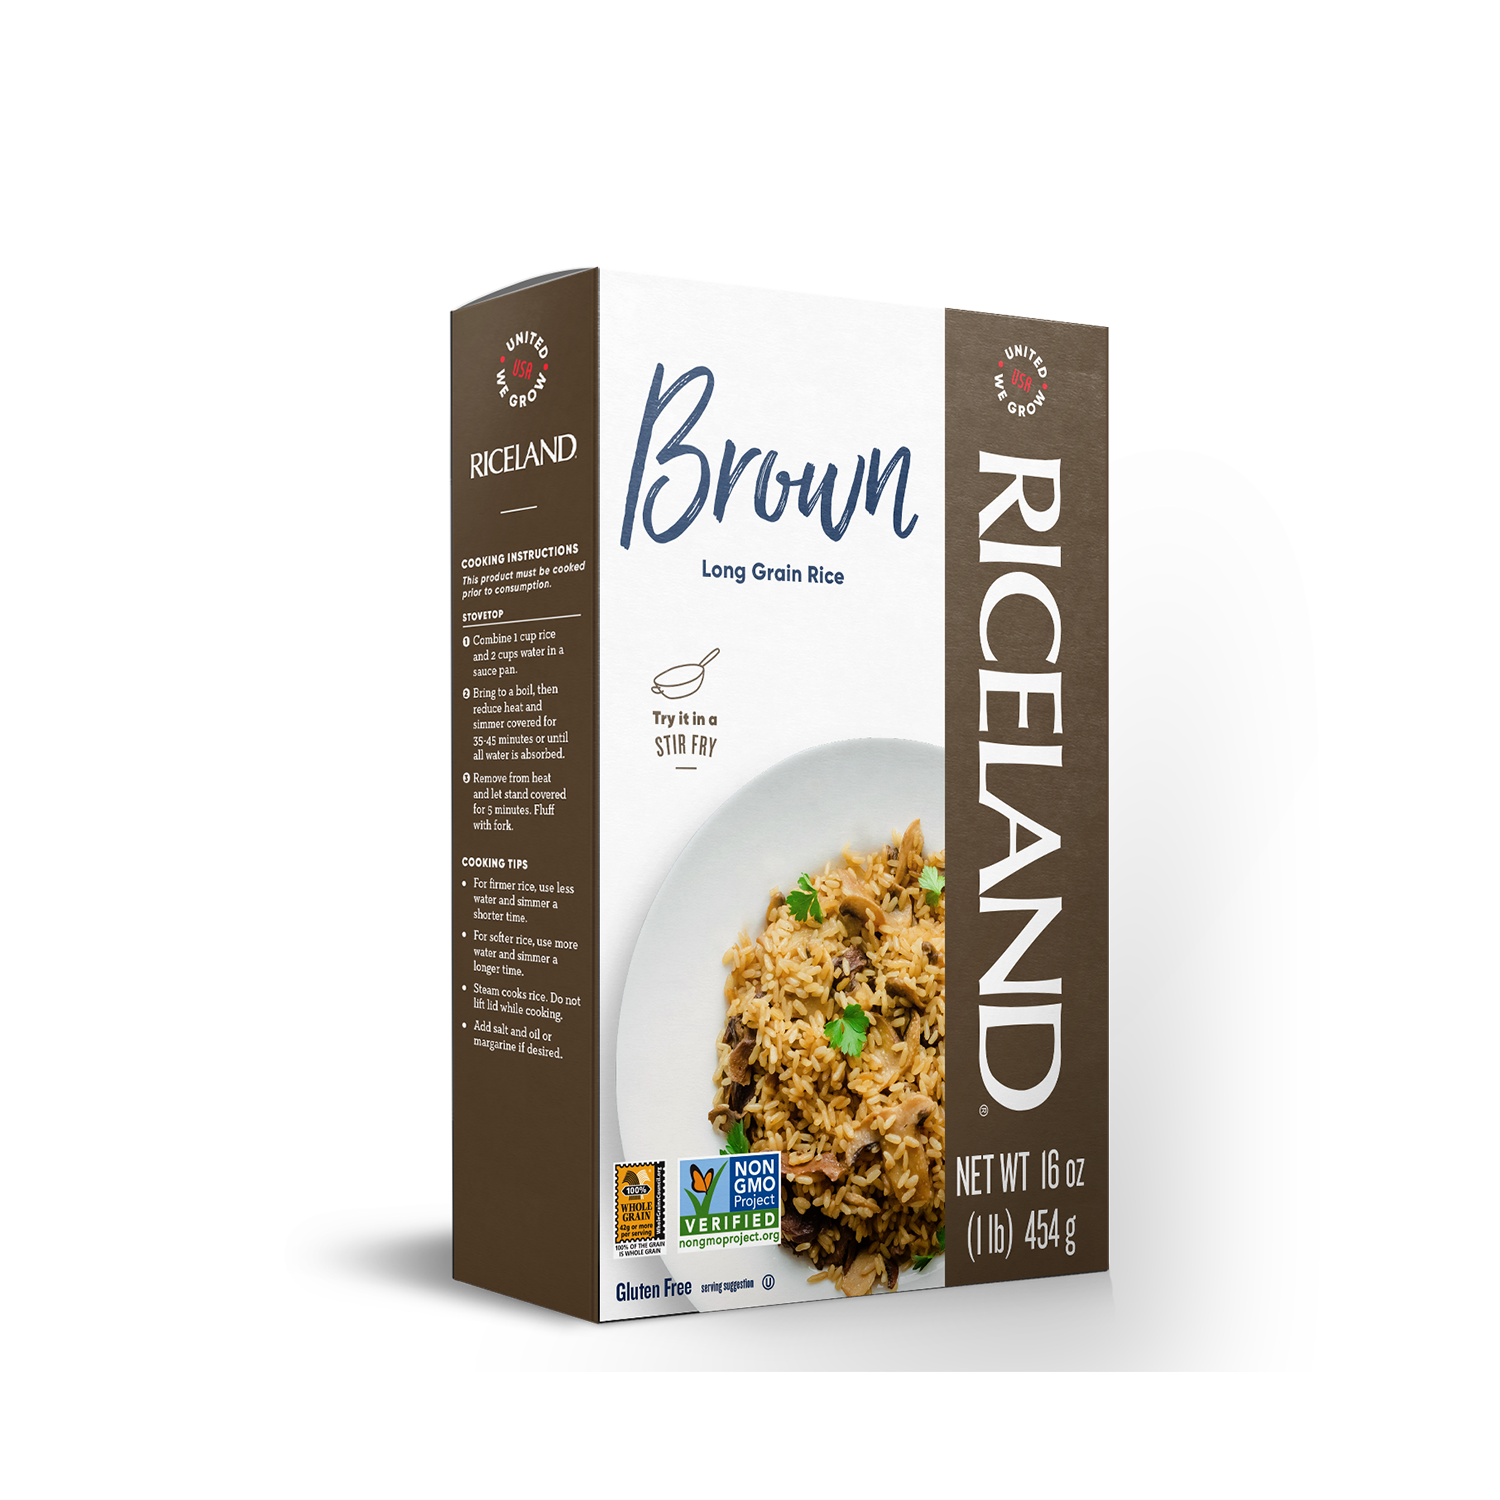 Riceland Extra Long Grain Brown Rice Carton 1 lb